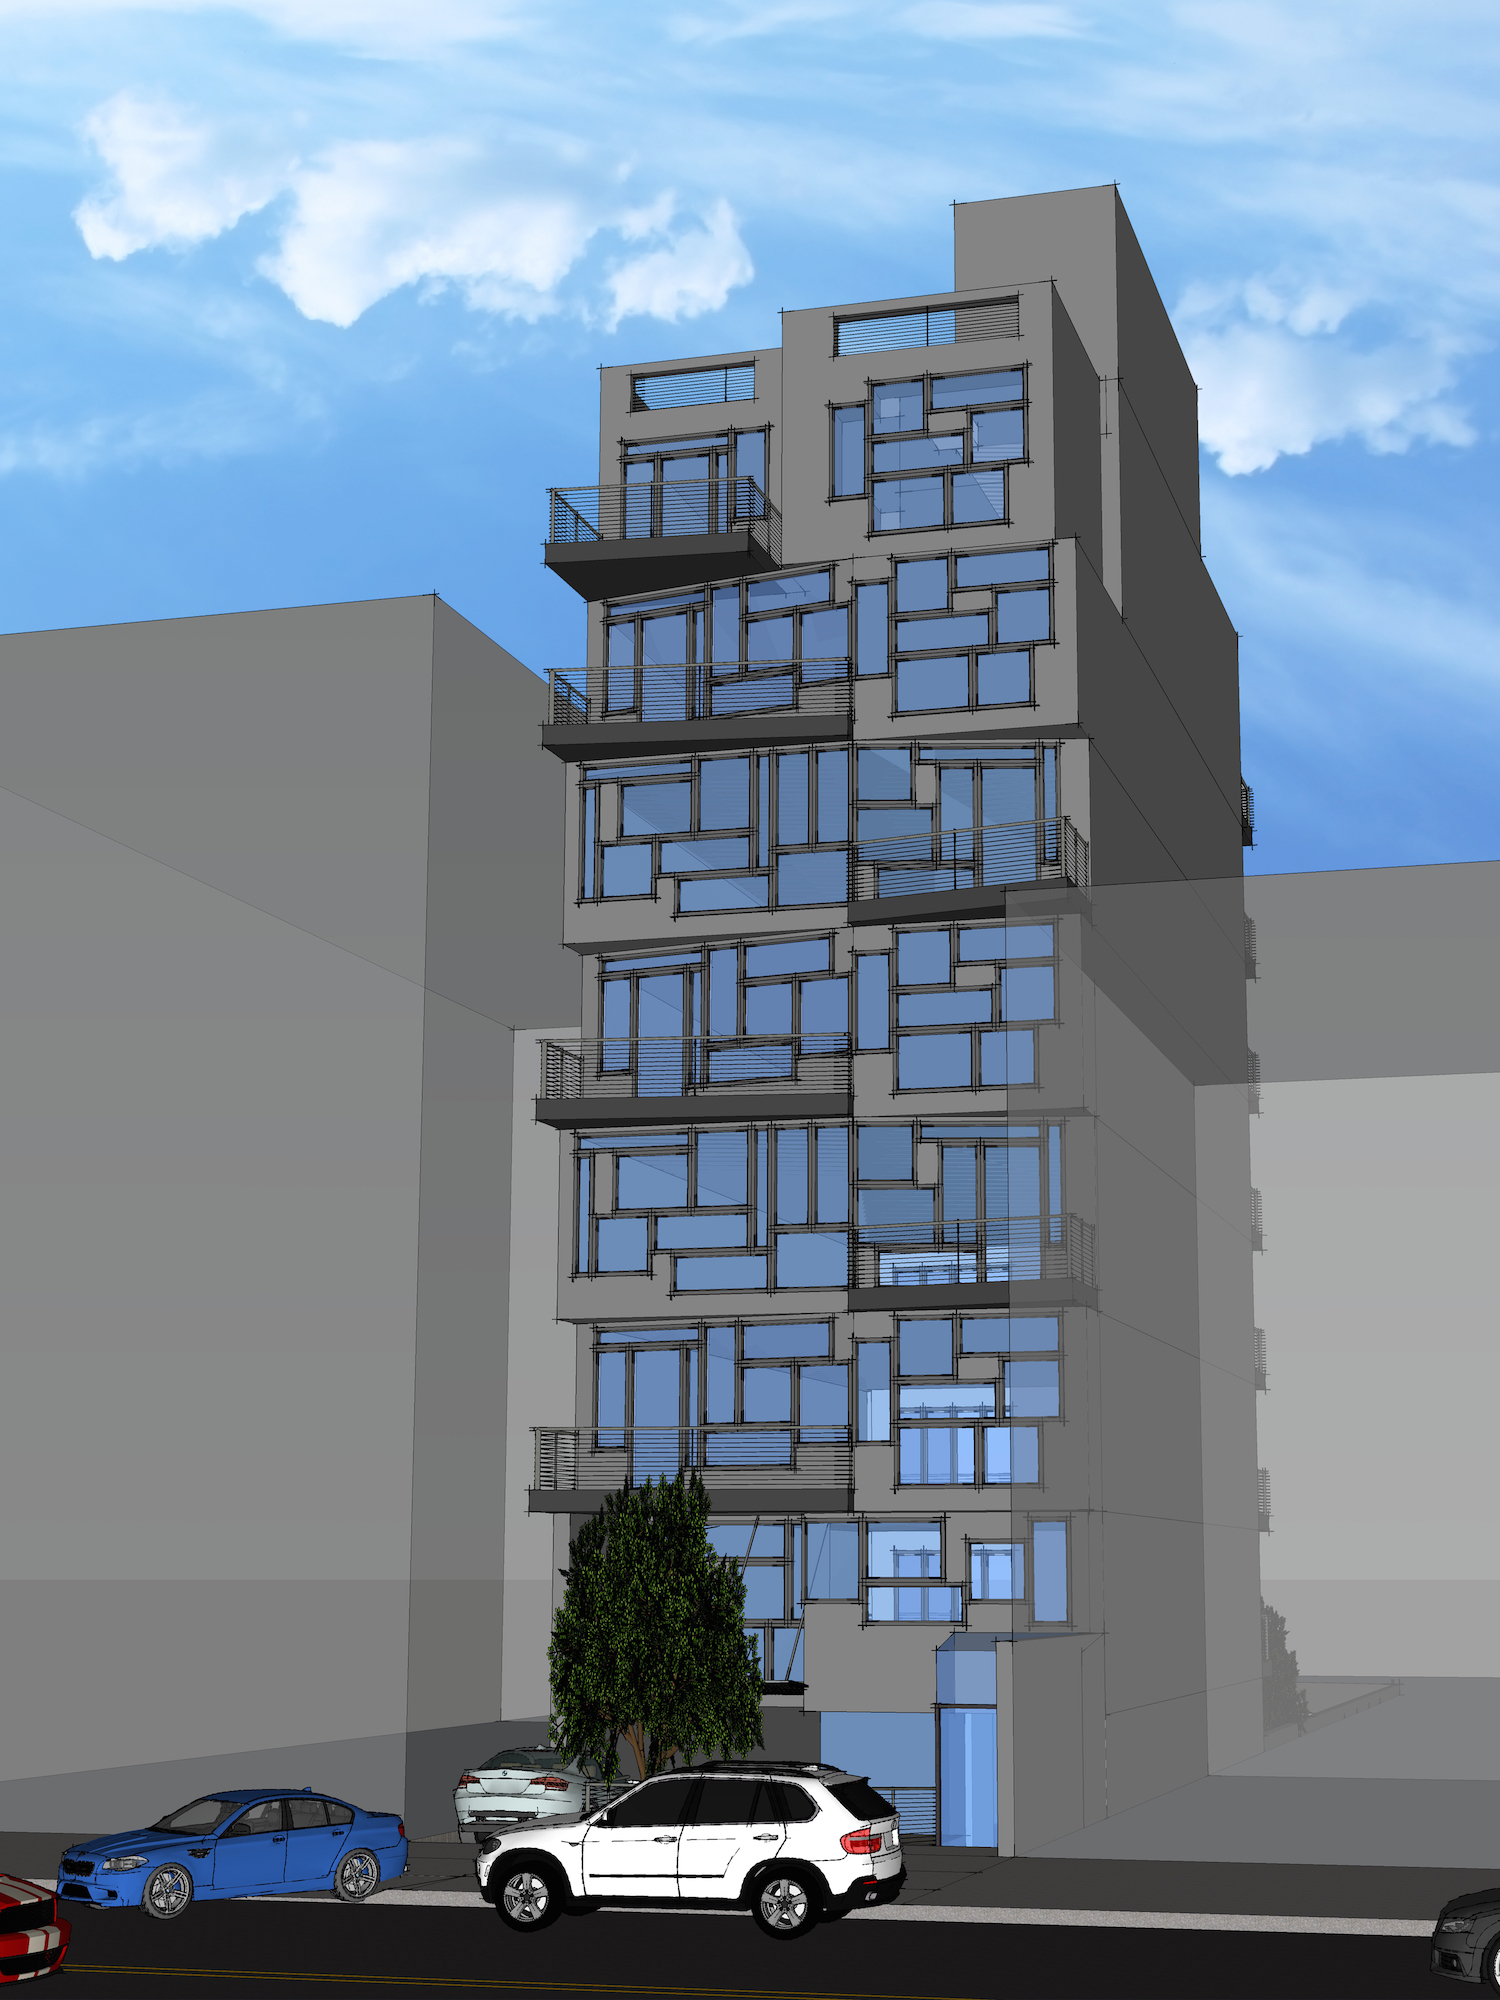 23-23 Astoria Boulevard, rendering by HCN Architects